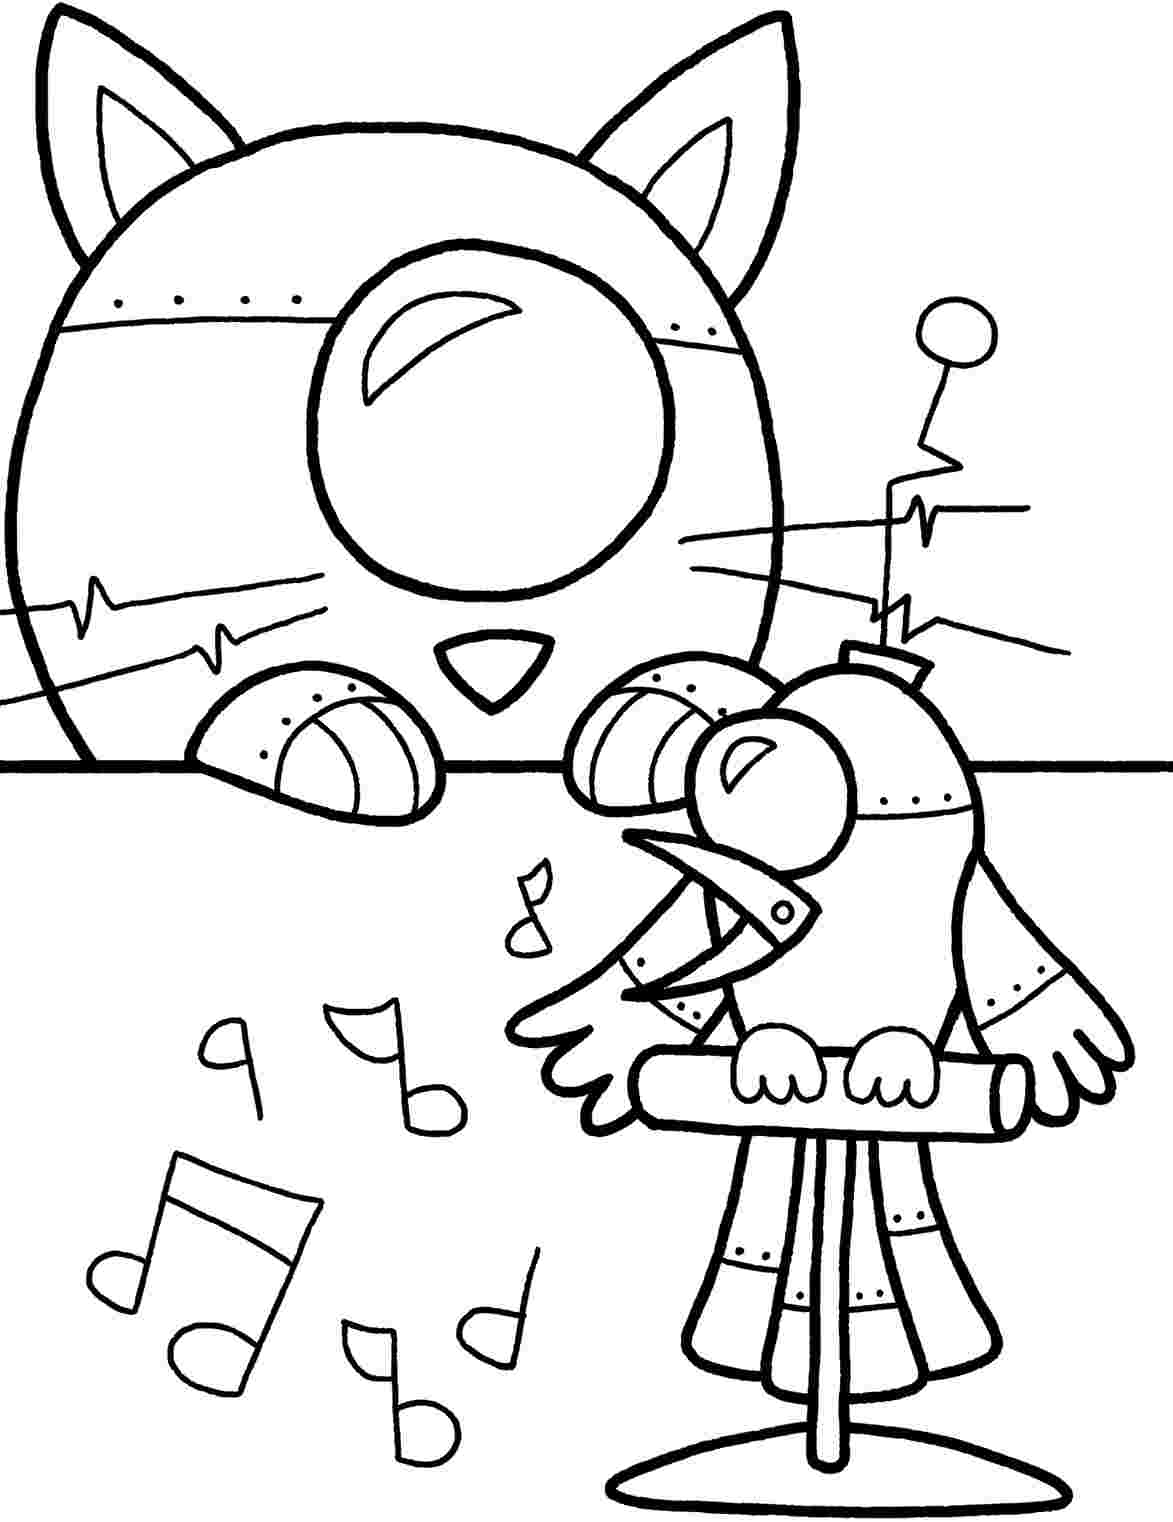 free robot coloring pages robot images free clipartsco free robot pages coloring